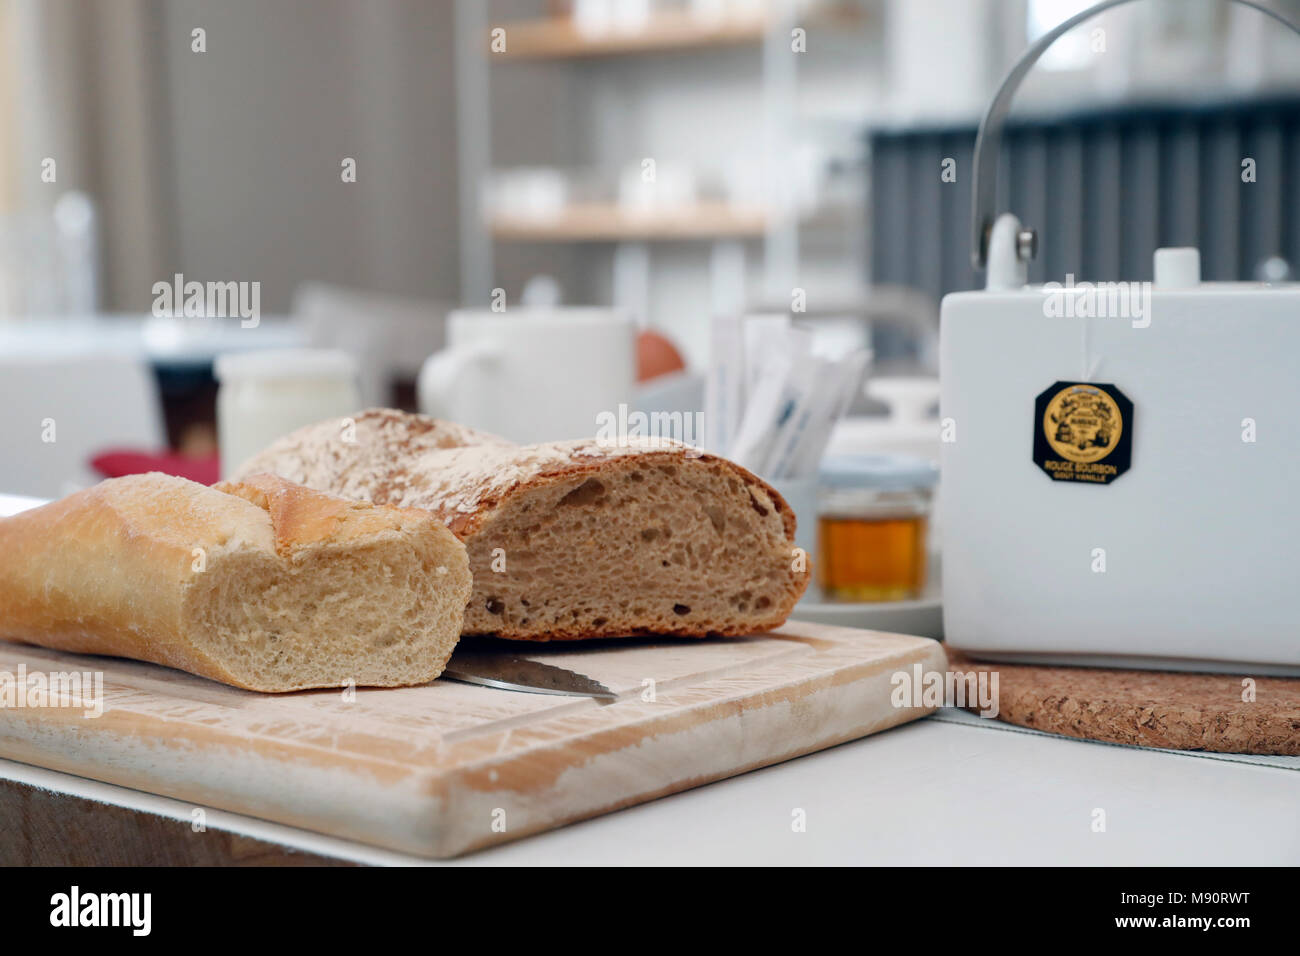 Breakfast on a table at a hotel. Bred and tea. - Stock Image